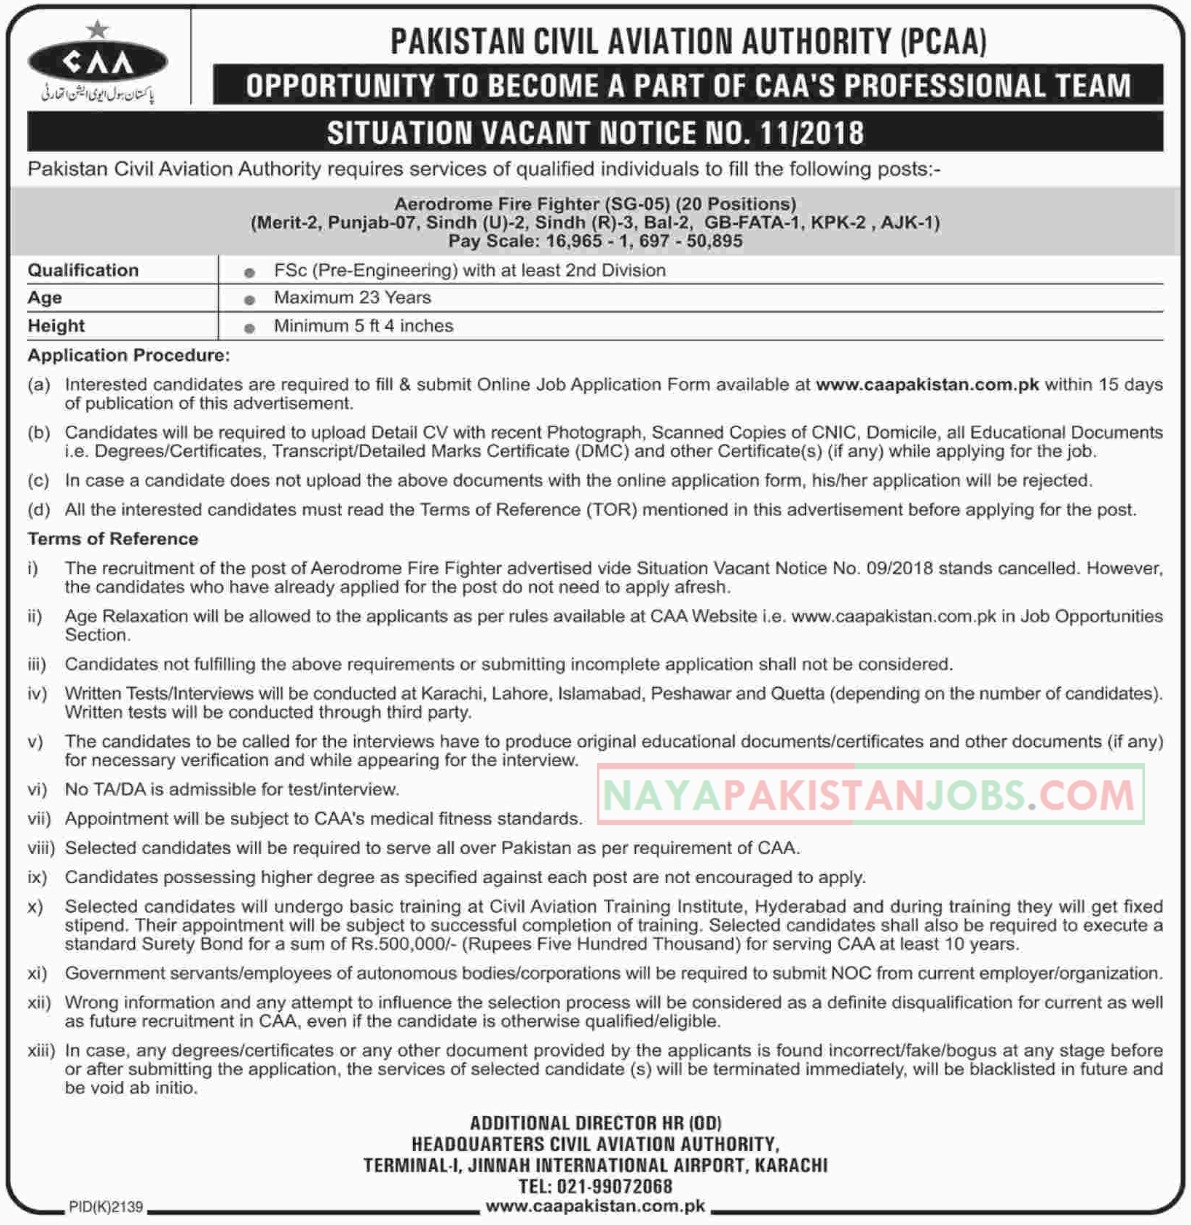 Latest Vacancies Announced in CCA Pakistan Civil Aviation Authority for Aerodrome Fire Fighter 4 December 2018 - Naya Pakistan